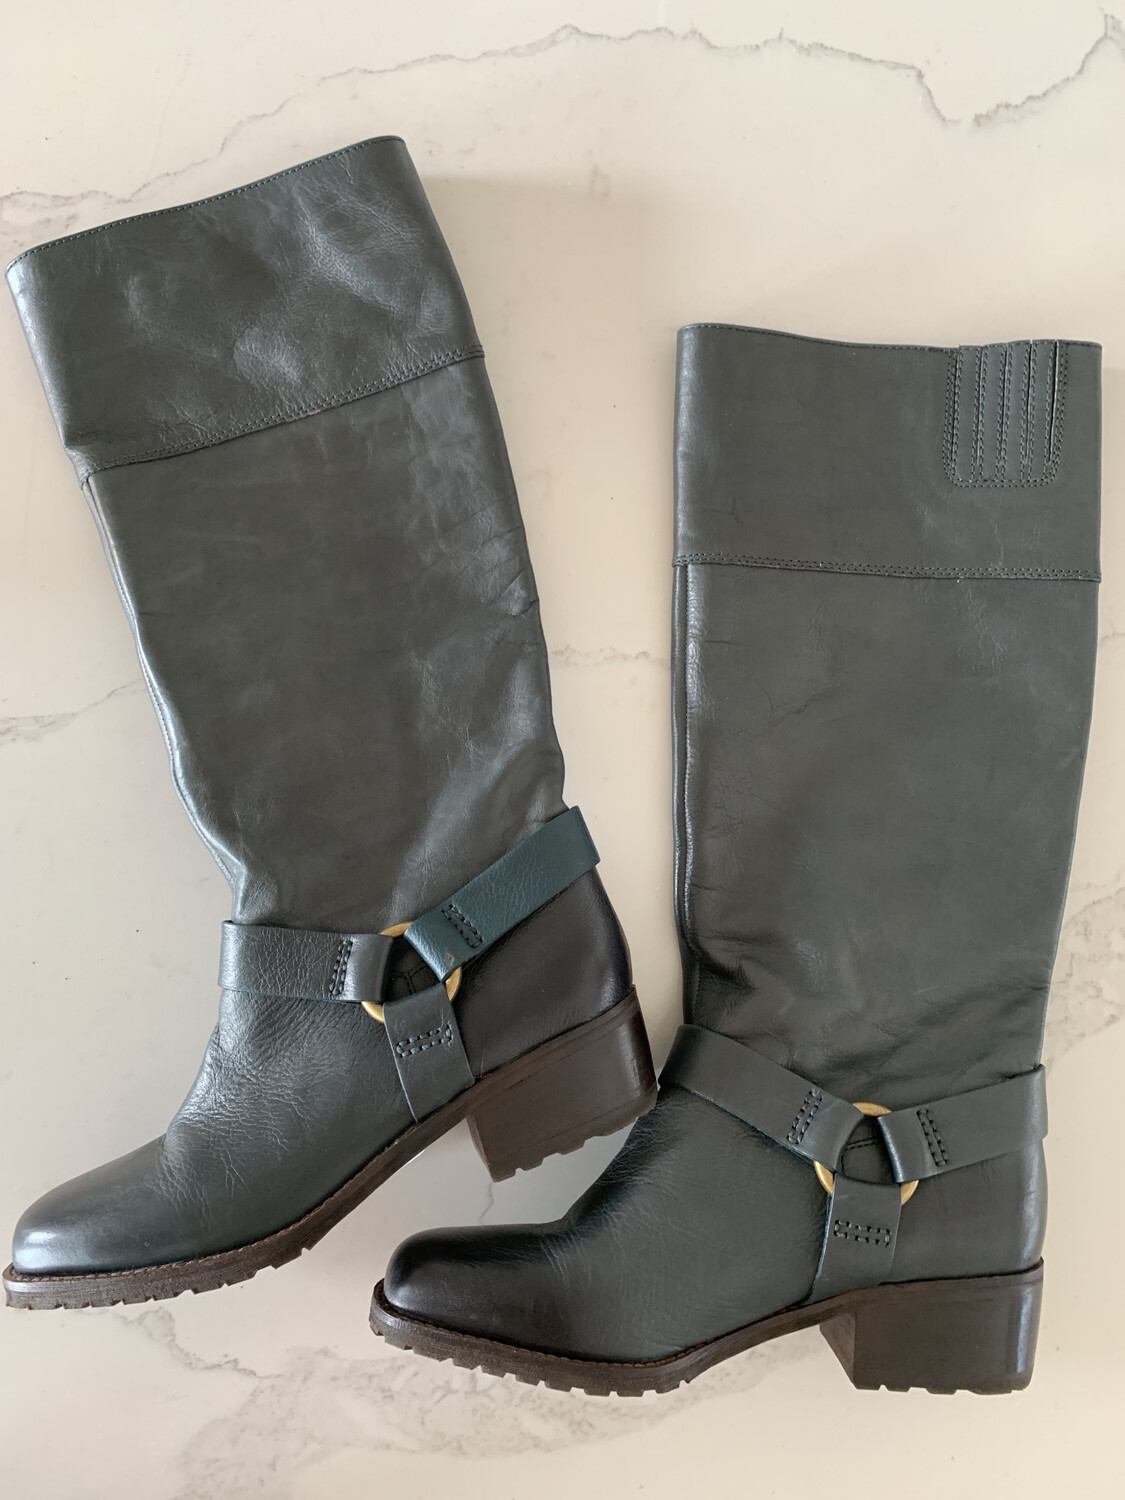 Lucky Brand Green Tall Boots - Size 9.5